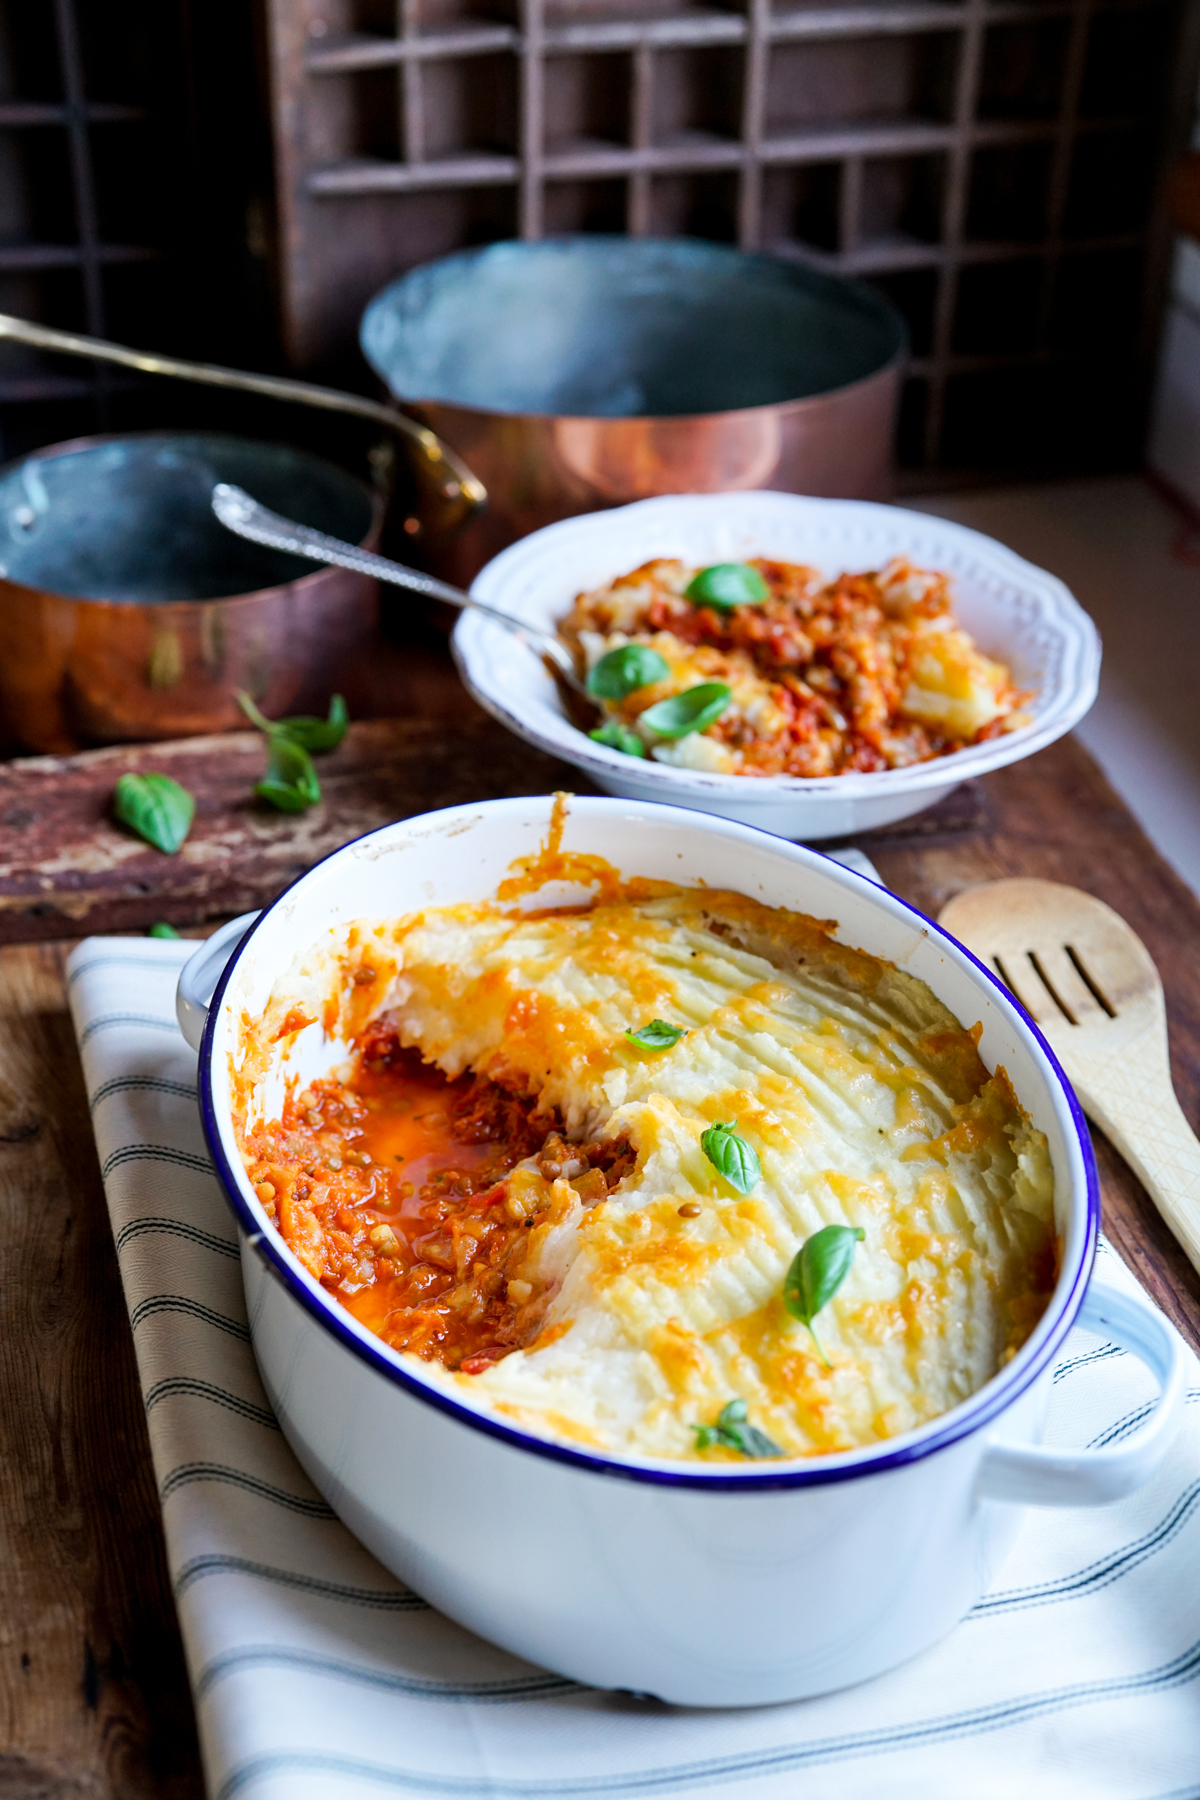 Lentil Cottage Pie with Cheesy Grilled Topping